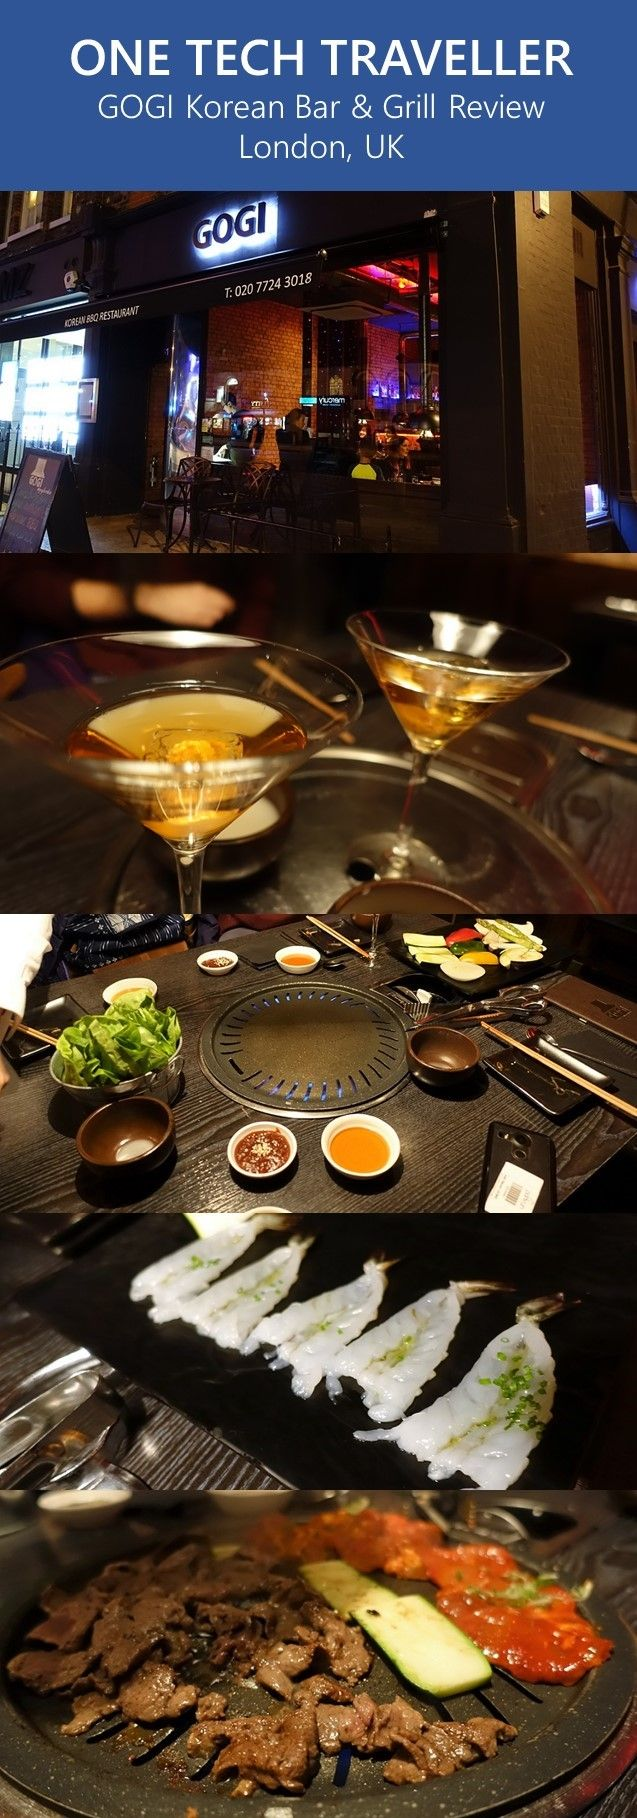 """""""We had a great time overall at GOGI Korean restaurant London. The Korean BBQ was a nice experience, the quality of the meat and seafood were very good and the Makgeolli (막걸리) drinks reminded me of being in South Korea""""   Read my full review: http://onetechtraveller.com/gogi-korean-bar-grill-london/  Follow One Tech Traveller Instagram www.instagram.com/onetechtraveller Facebook www.instagram.com/onetechtraveller"""